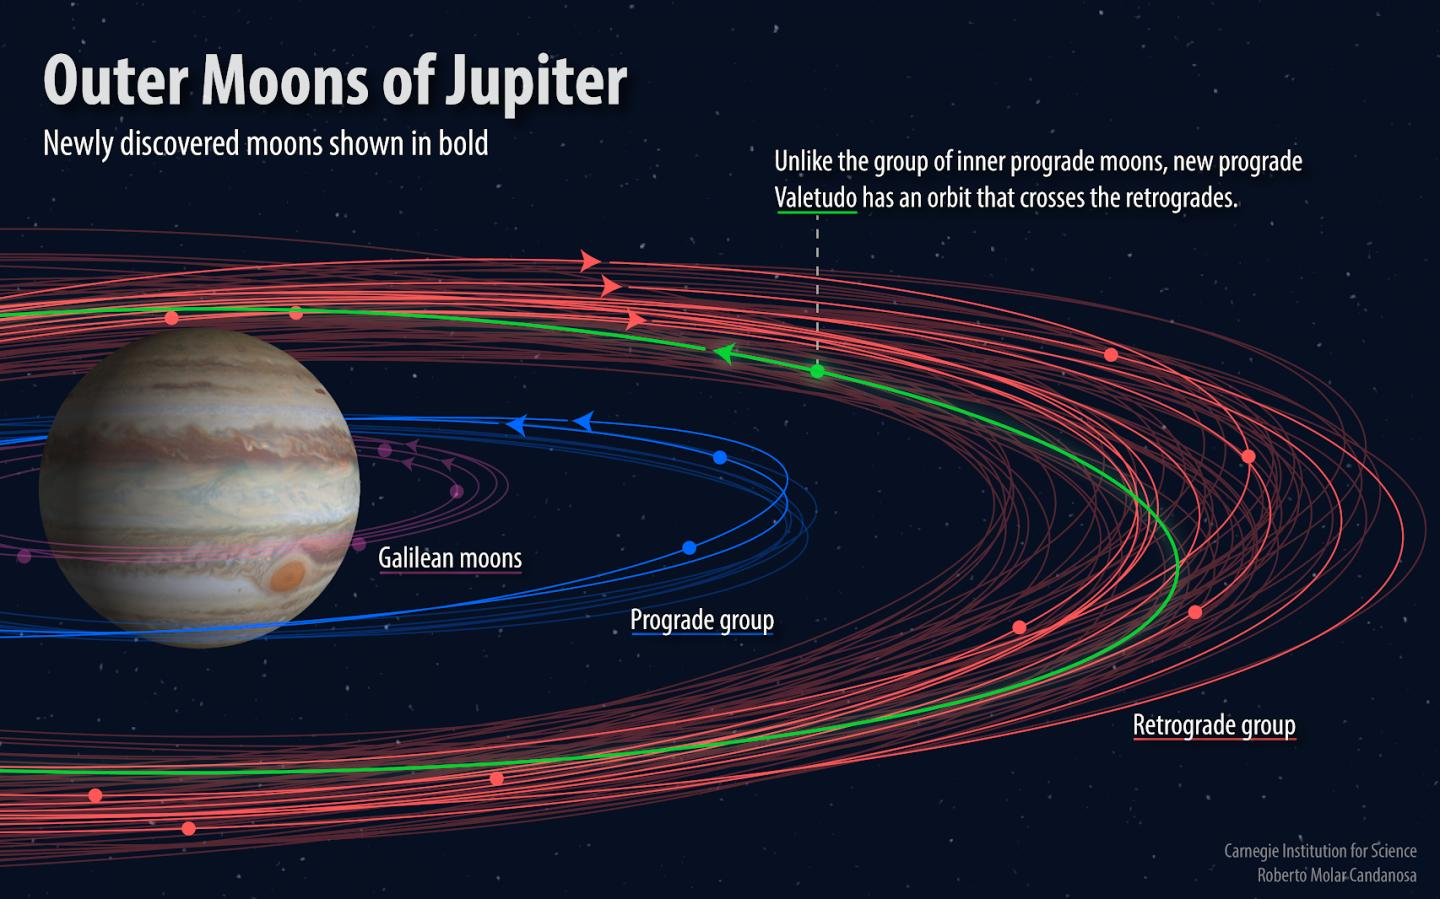 A chart of the newly discovered moons of Jupiter.